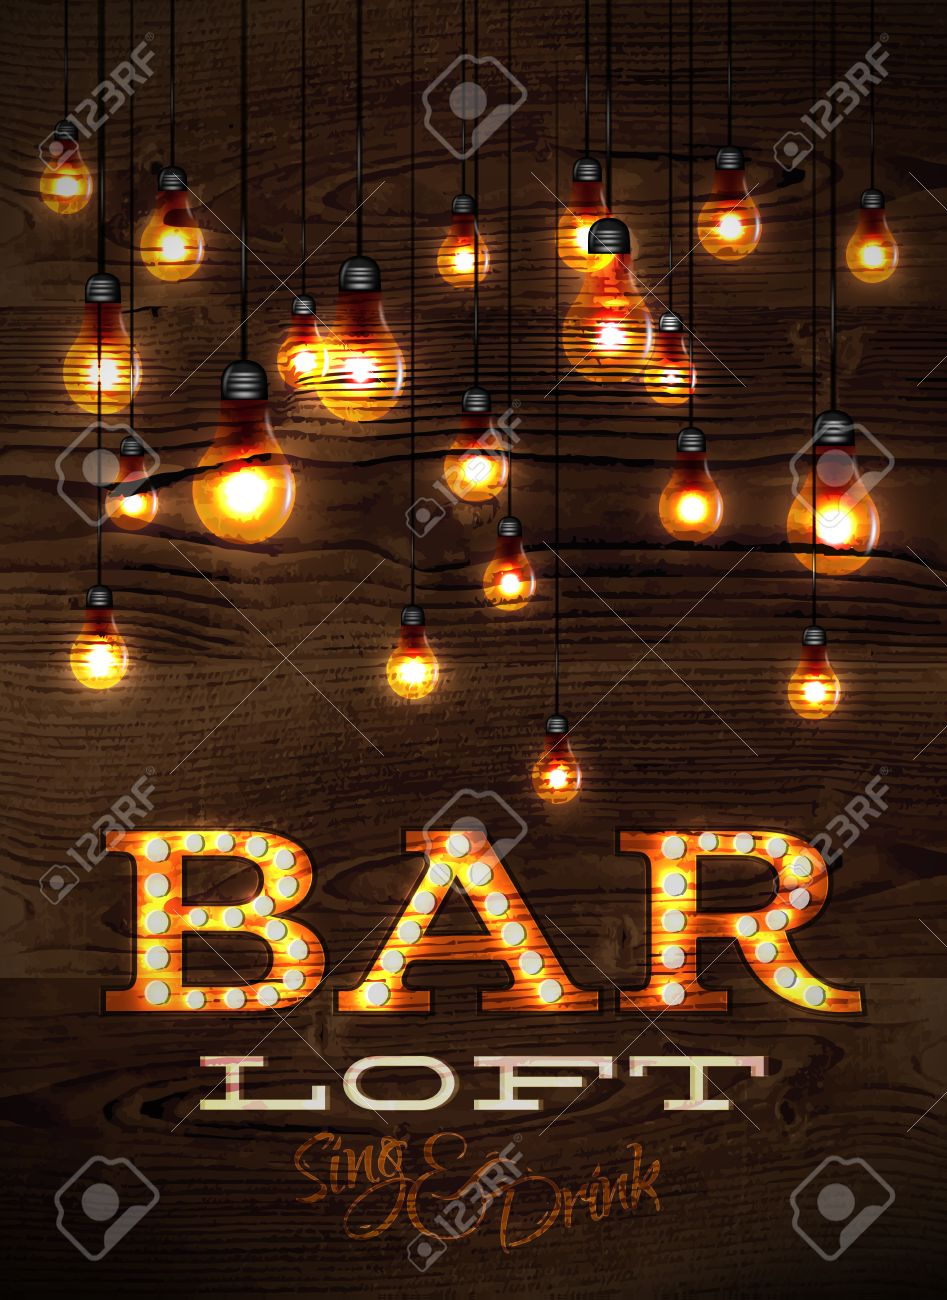 Vintage poster bar loft glowing lights on wood background in retro vintage poster bar loft glowing lights on wood background in retro styles 27457985 mozeypictures Image collections